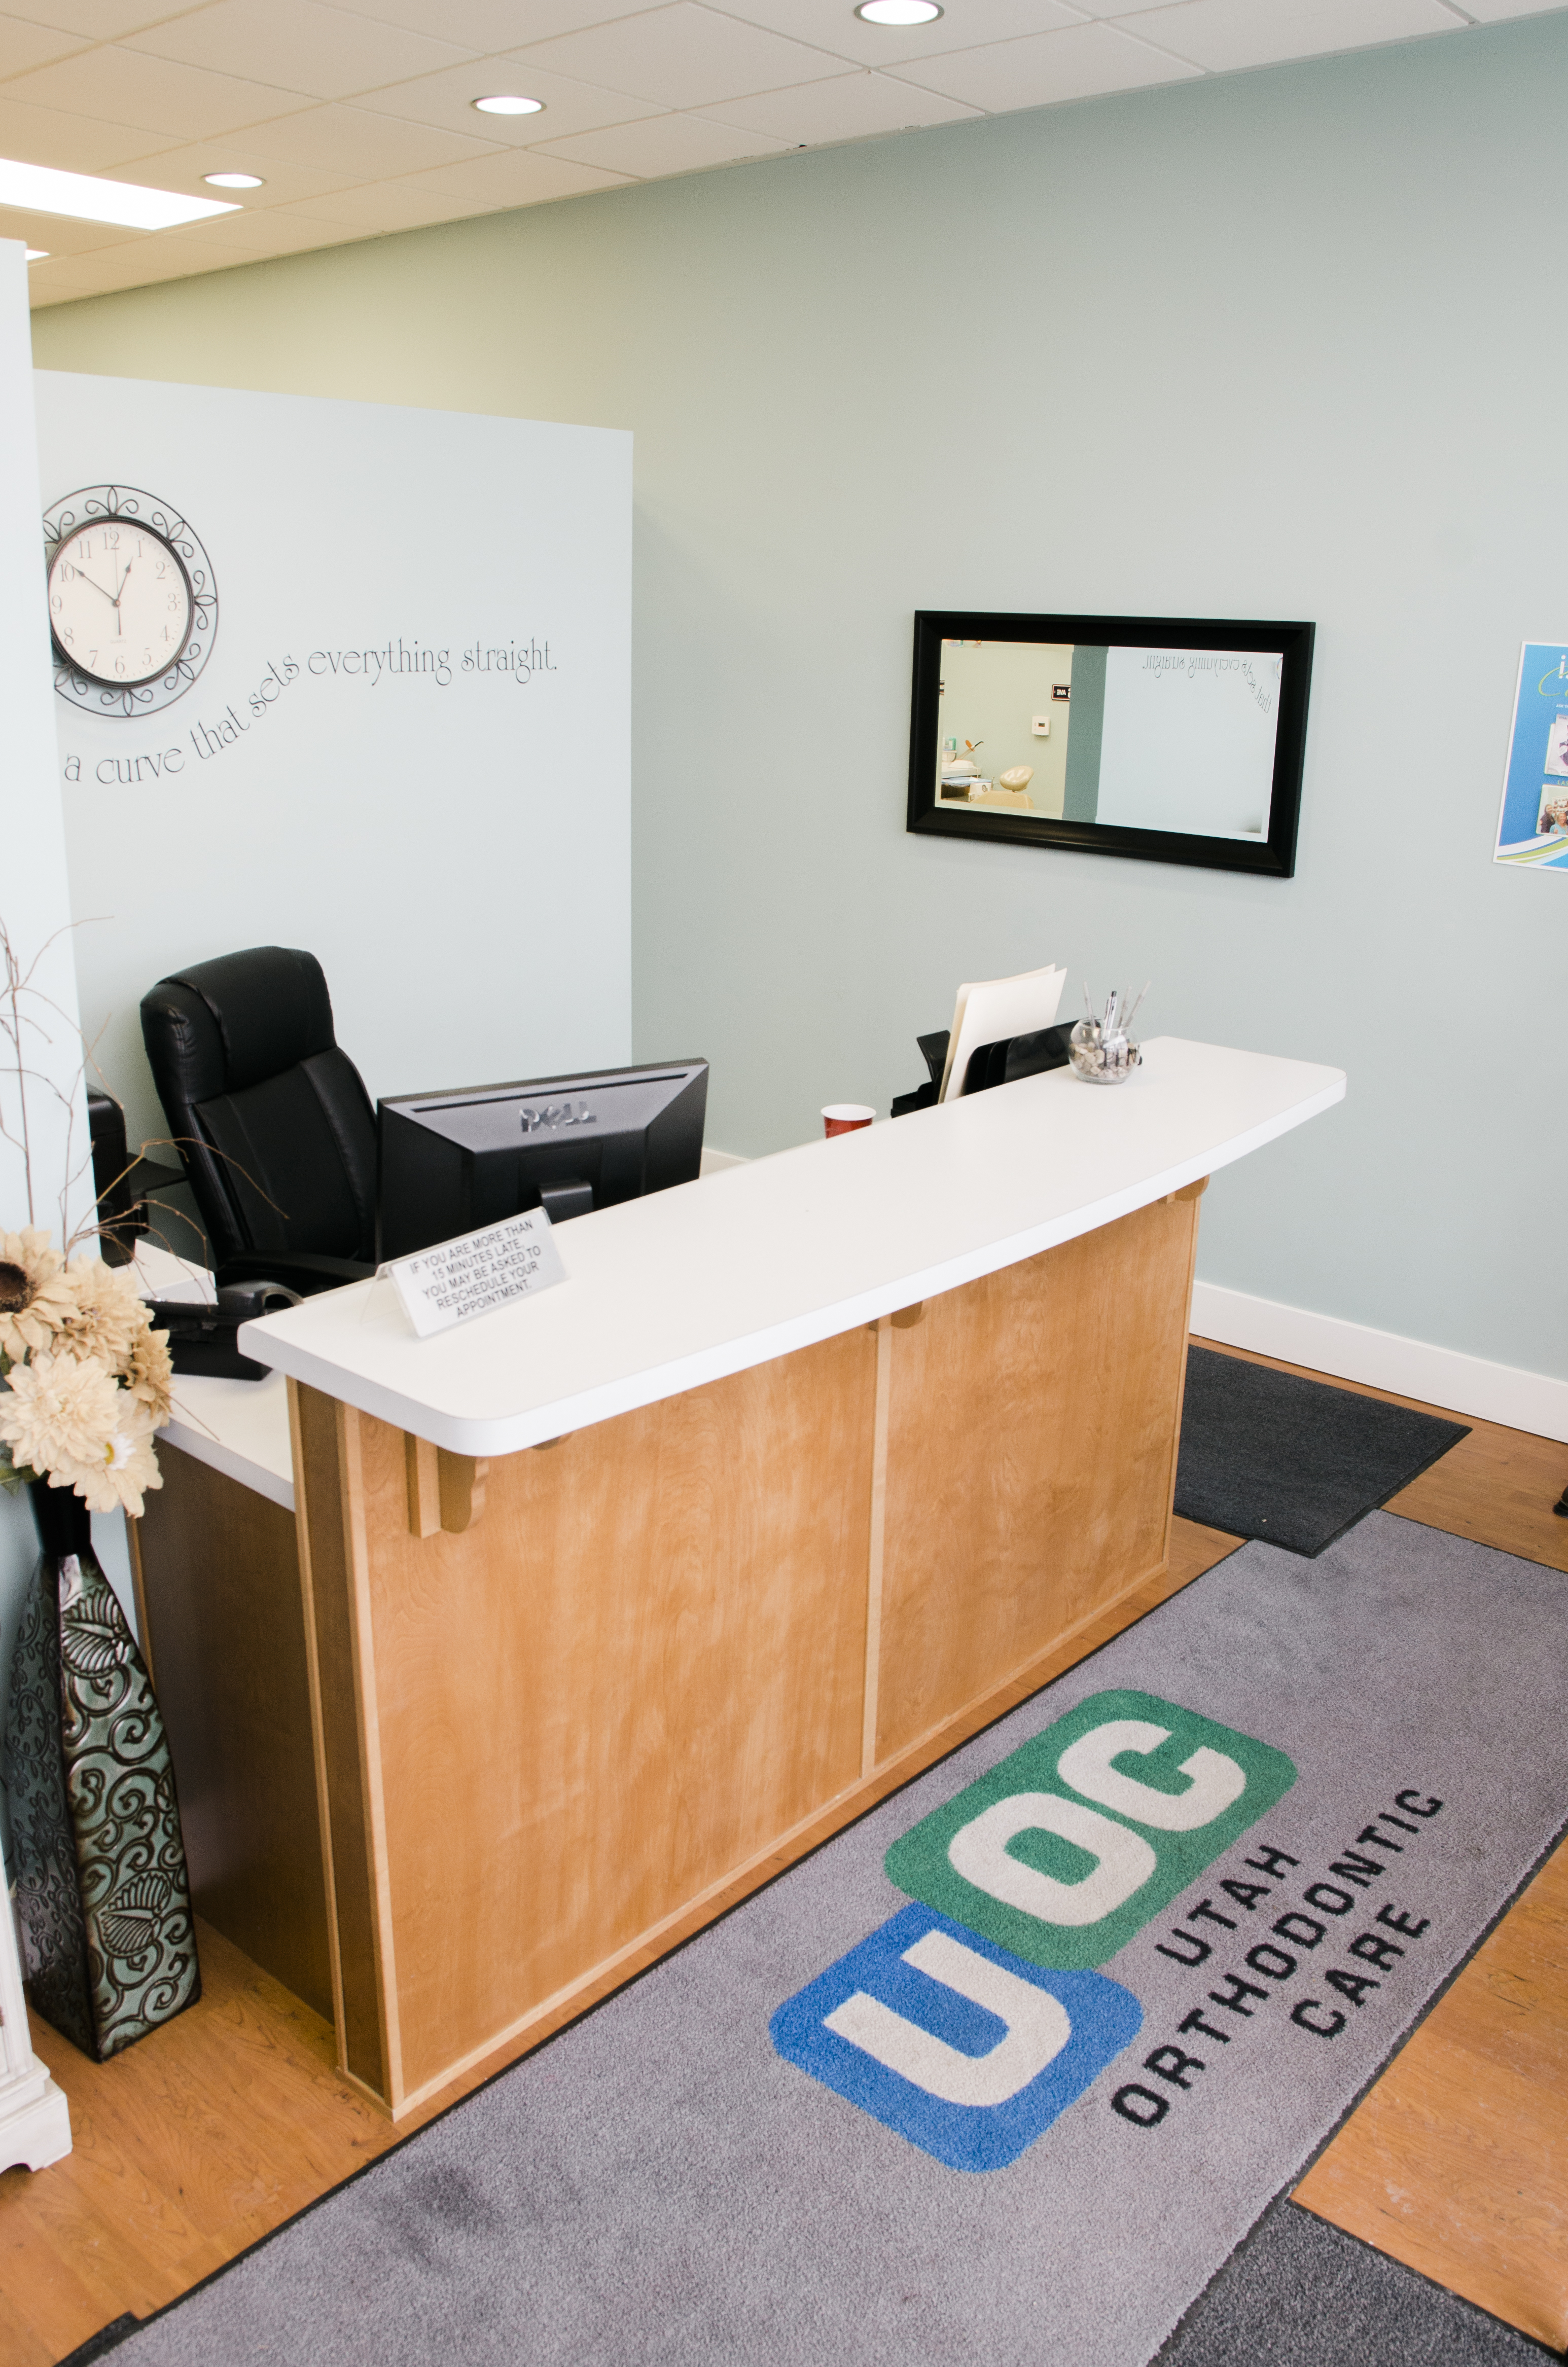 Get Started With Braces in West Valley City